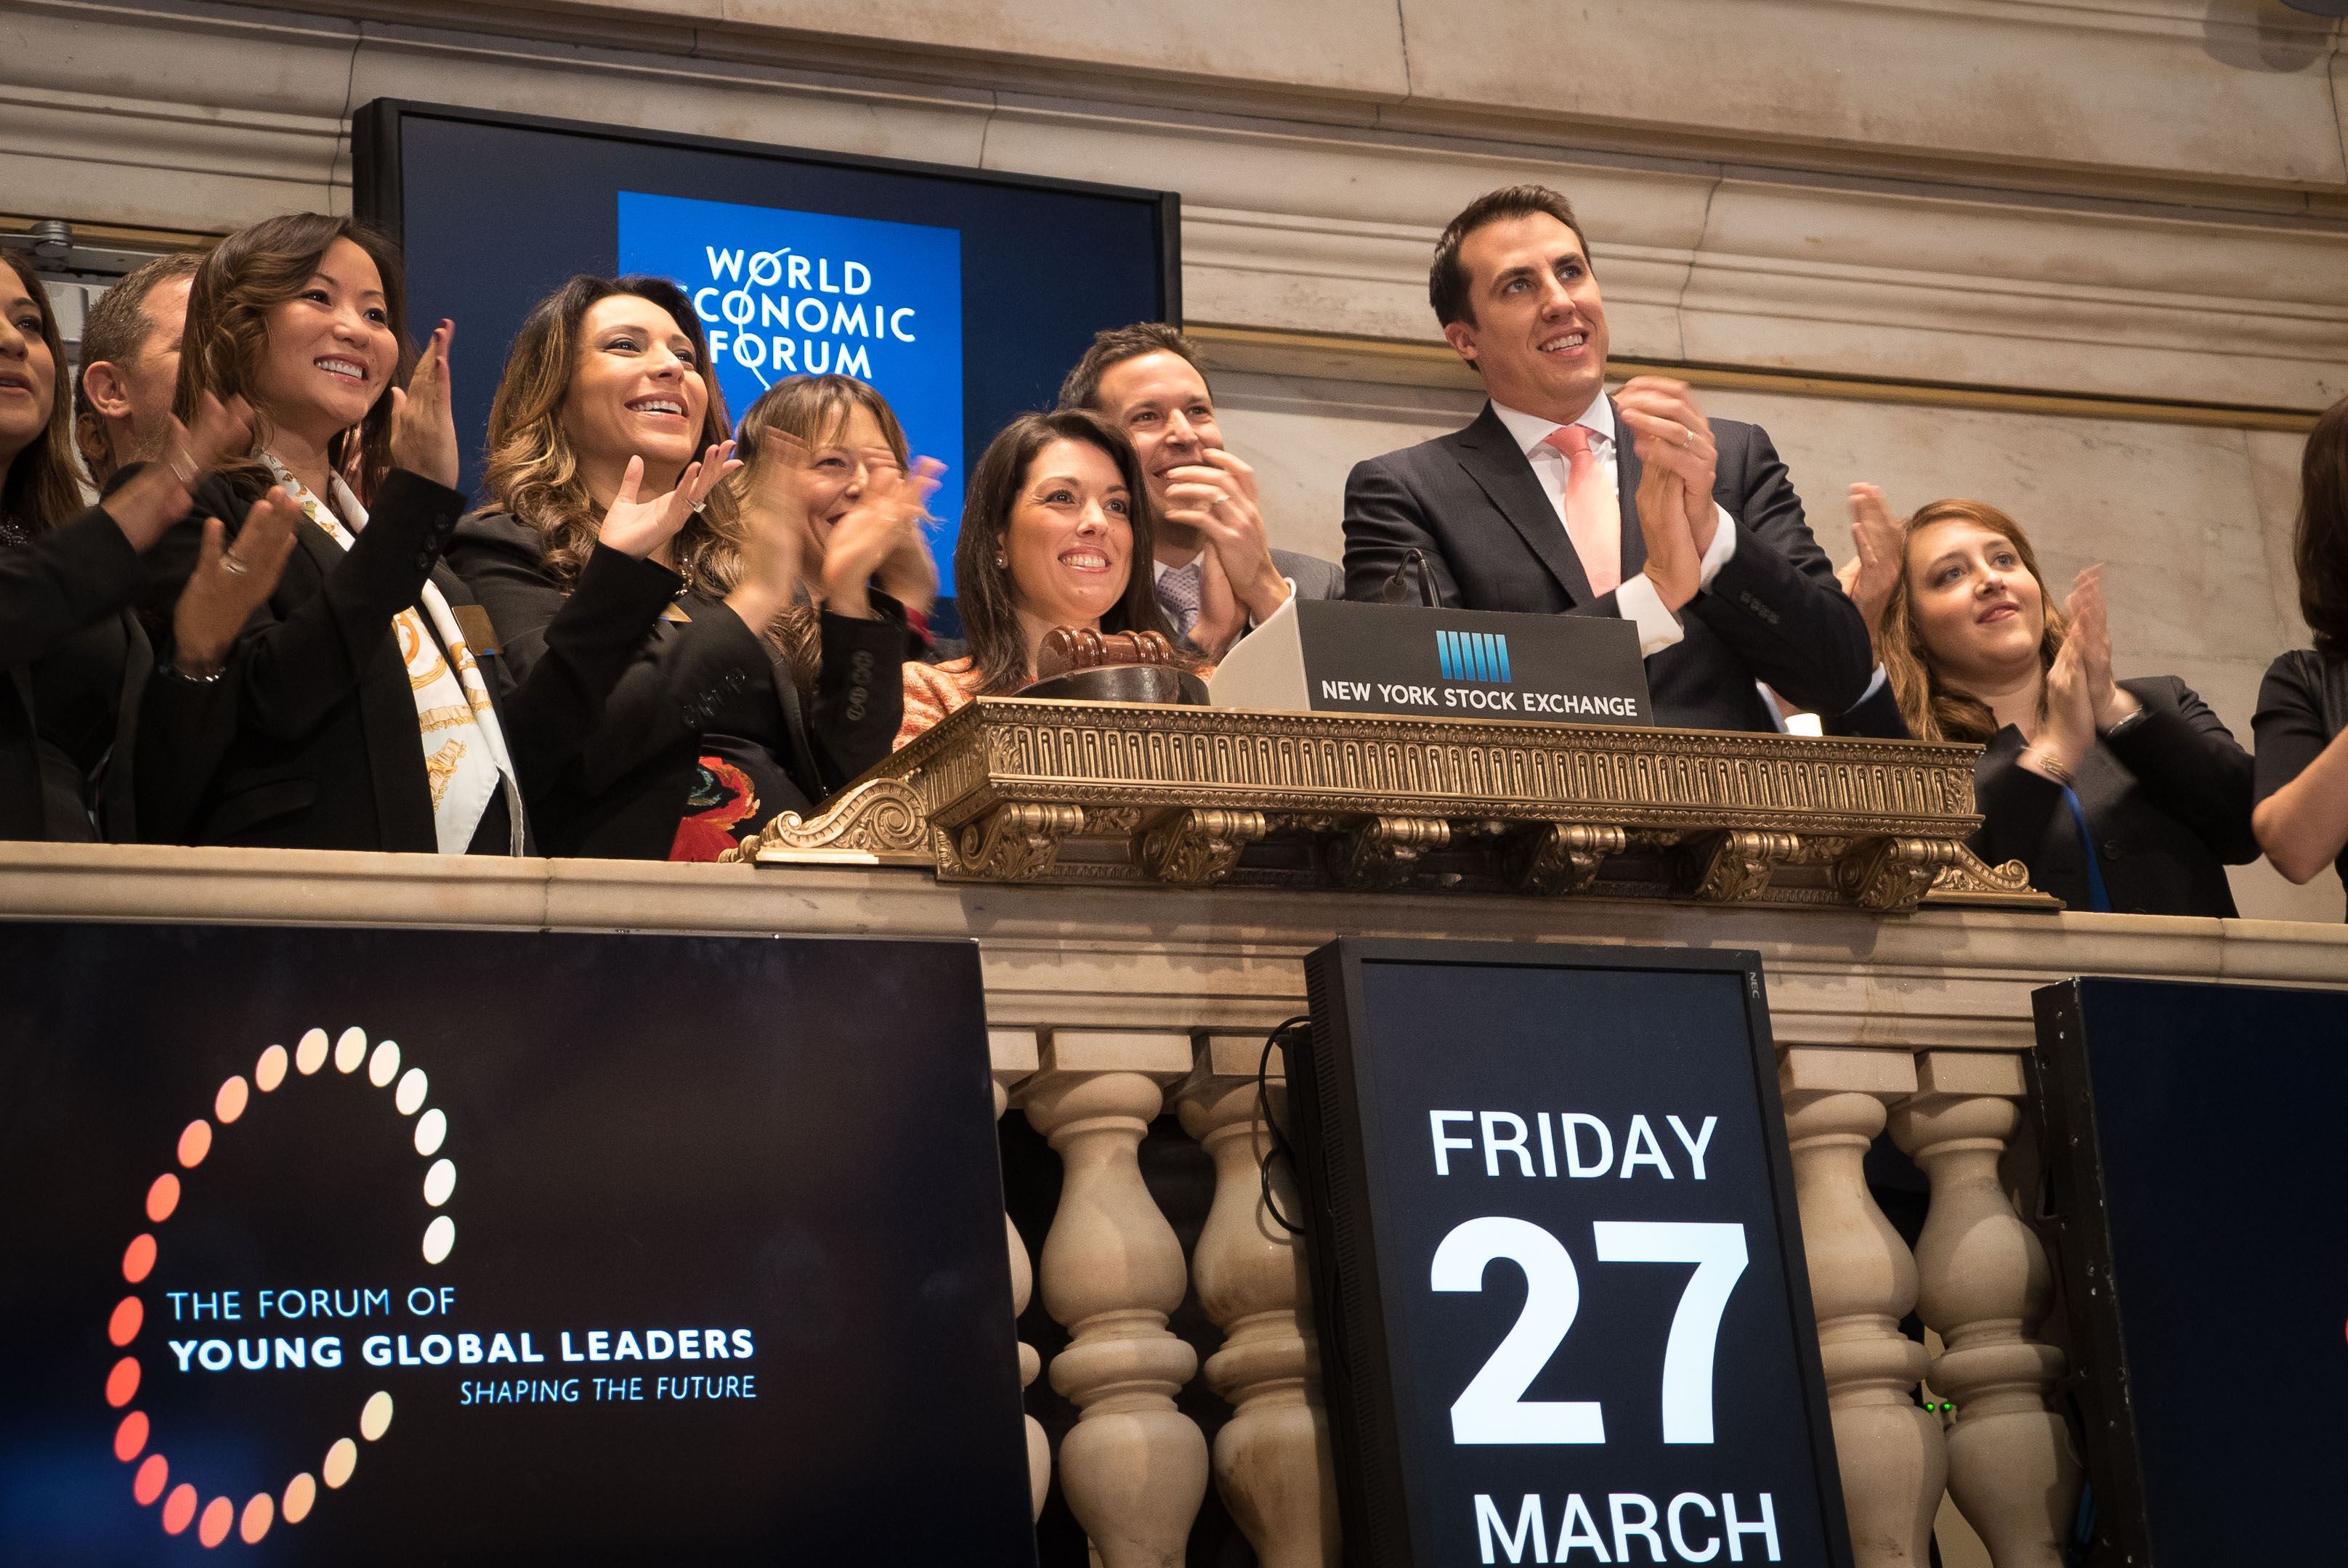 NYSE Opening Bell Ceremony